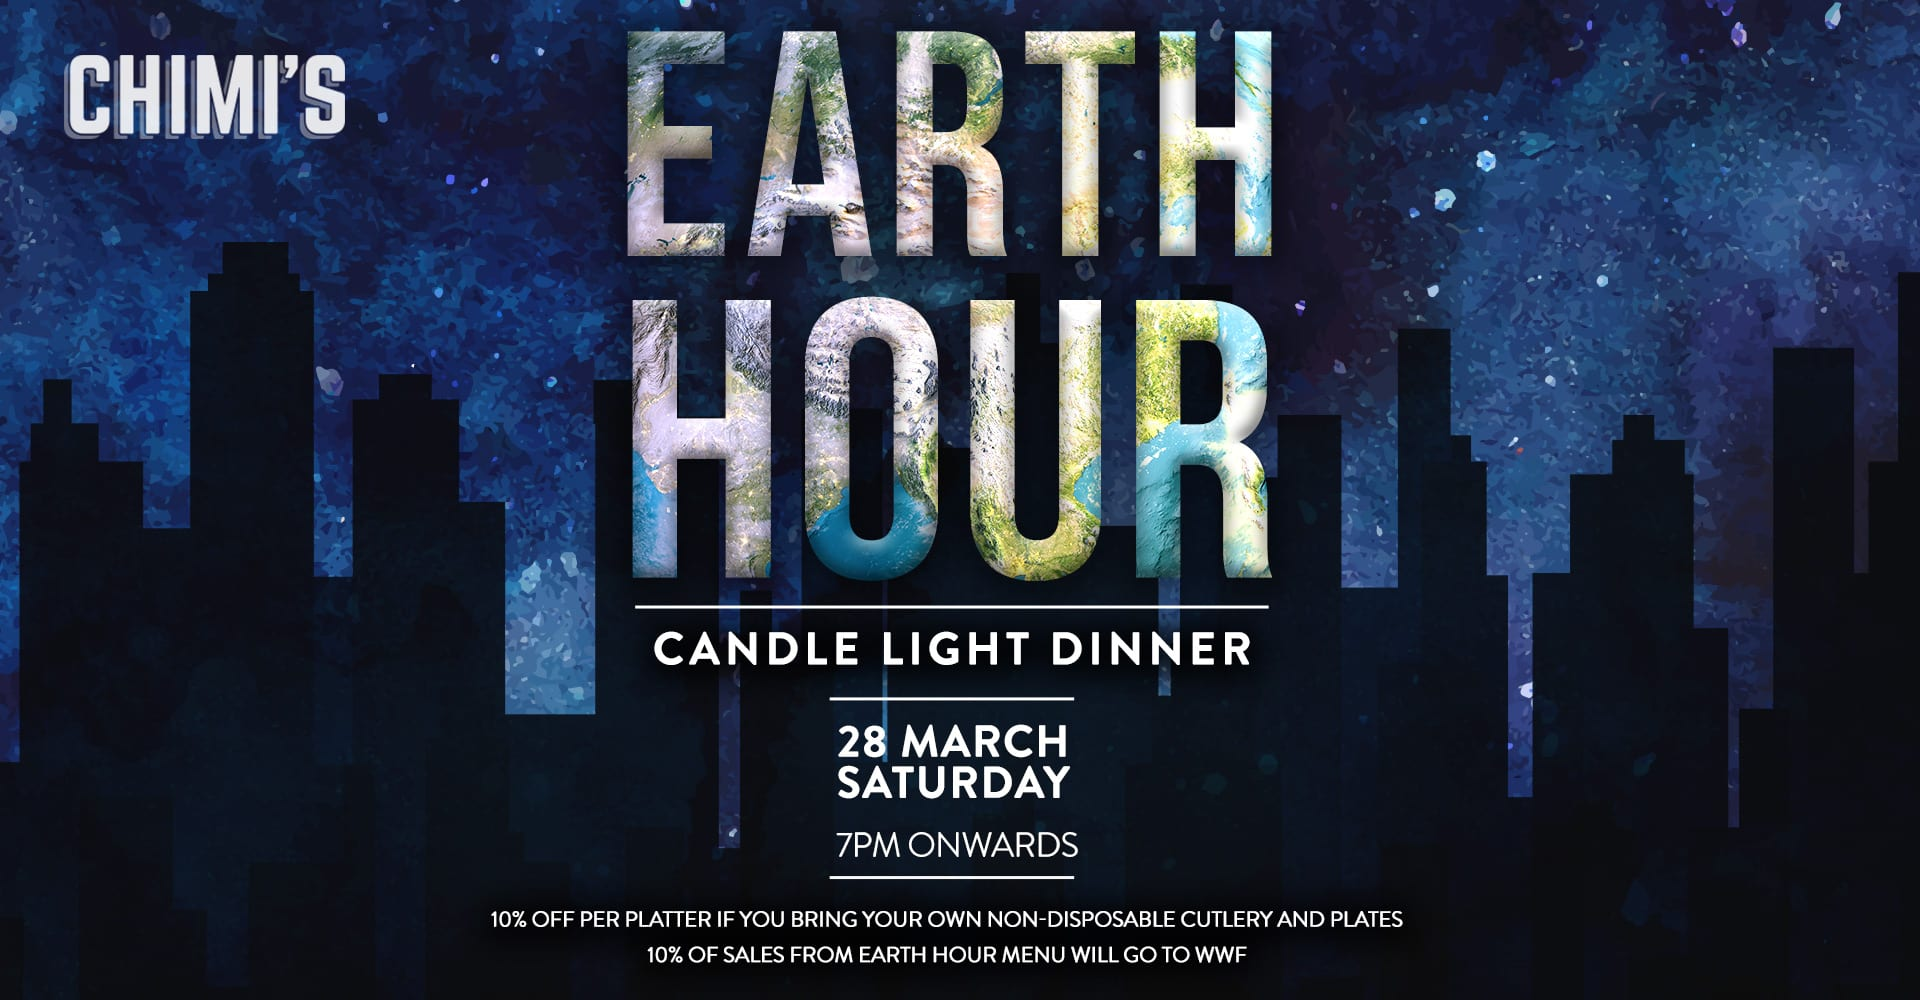 Chimi's Earth Hour Special